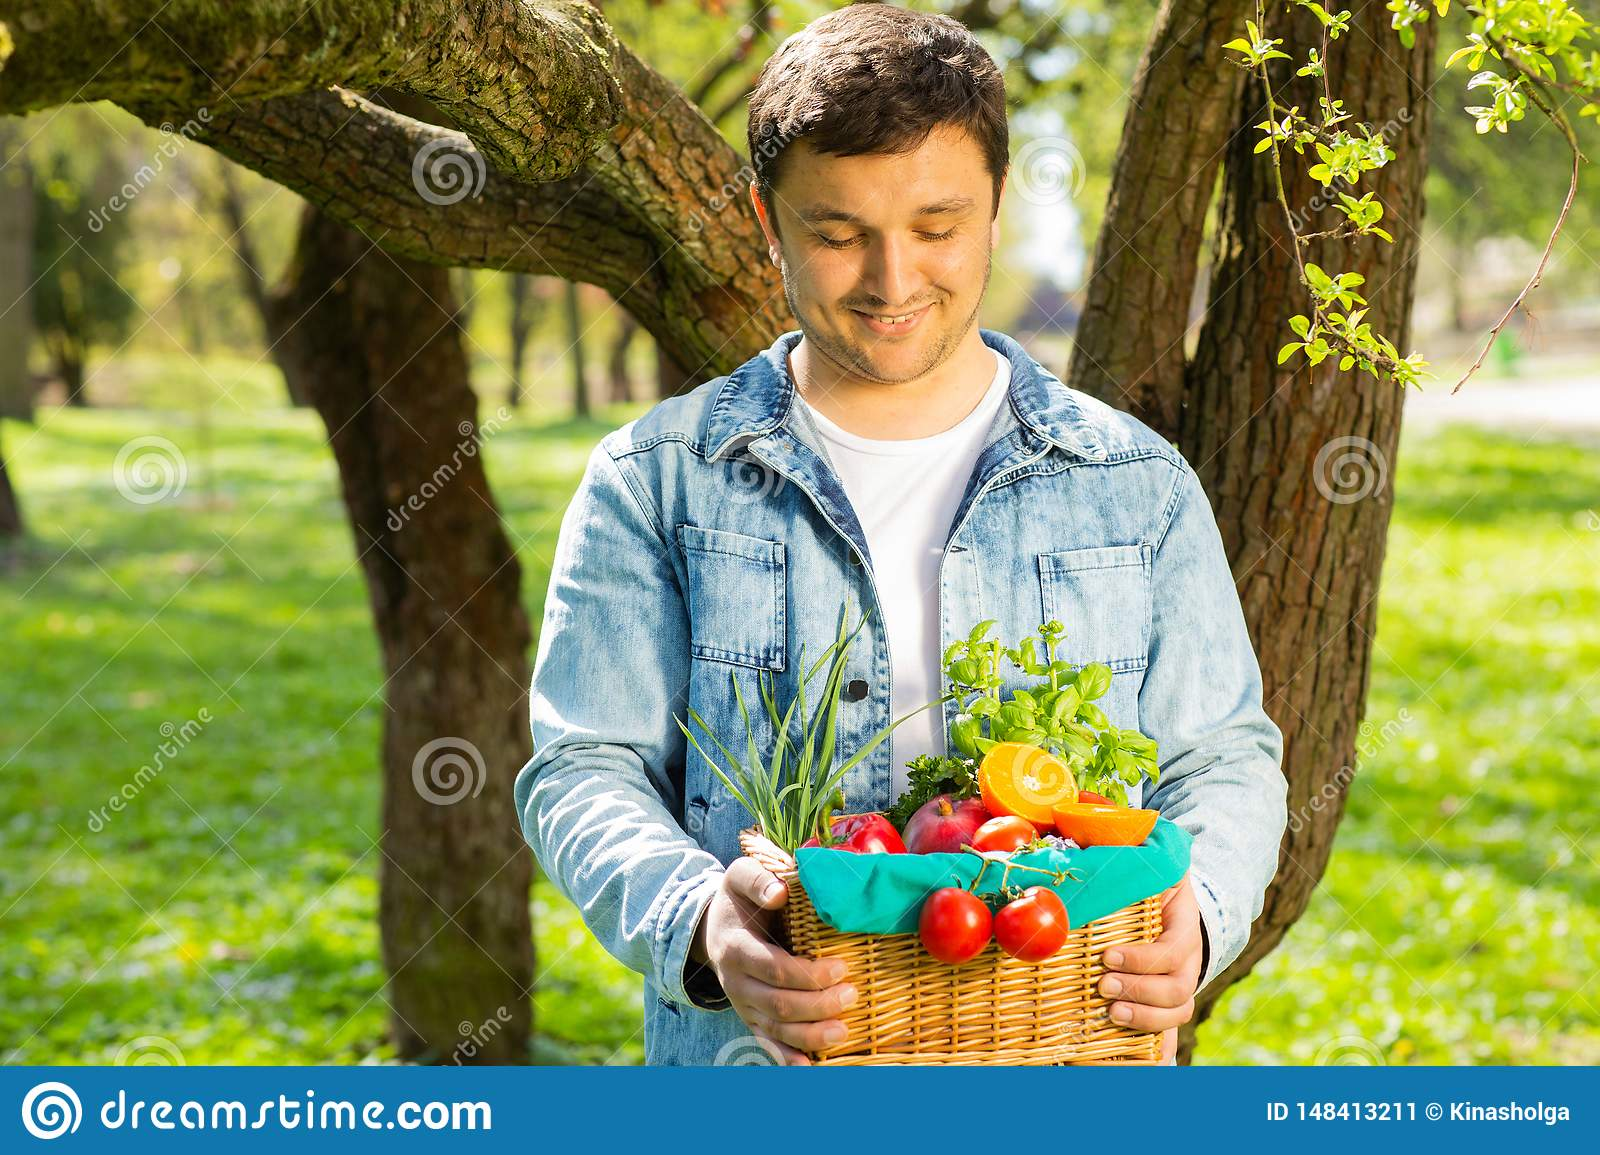 Basket with vegetables and fruits in the hands of a farmer background of nature. Concept of healthy lifestyle